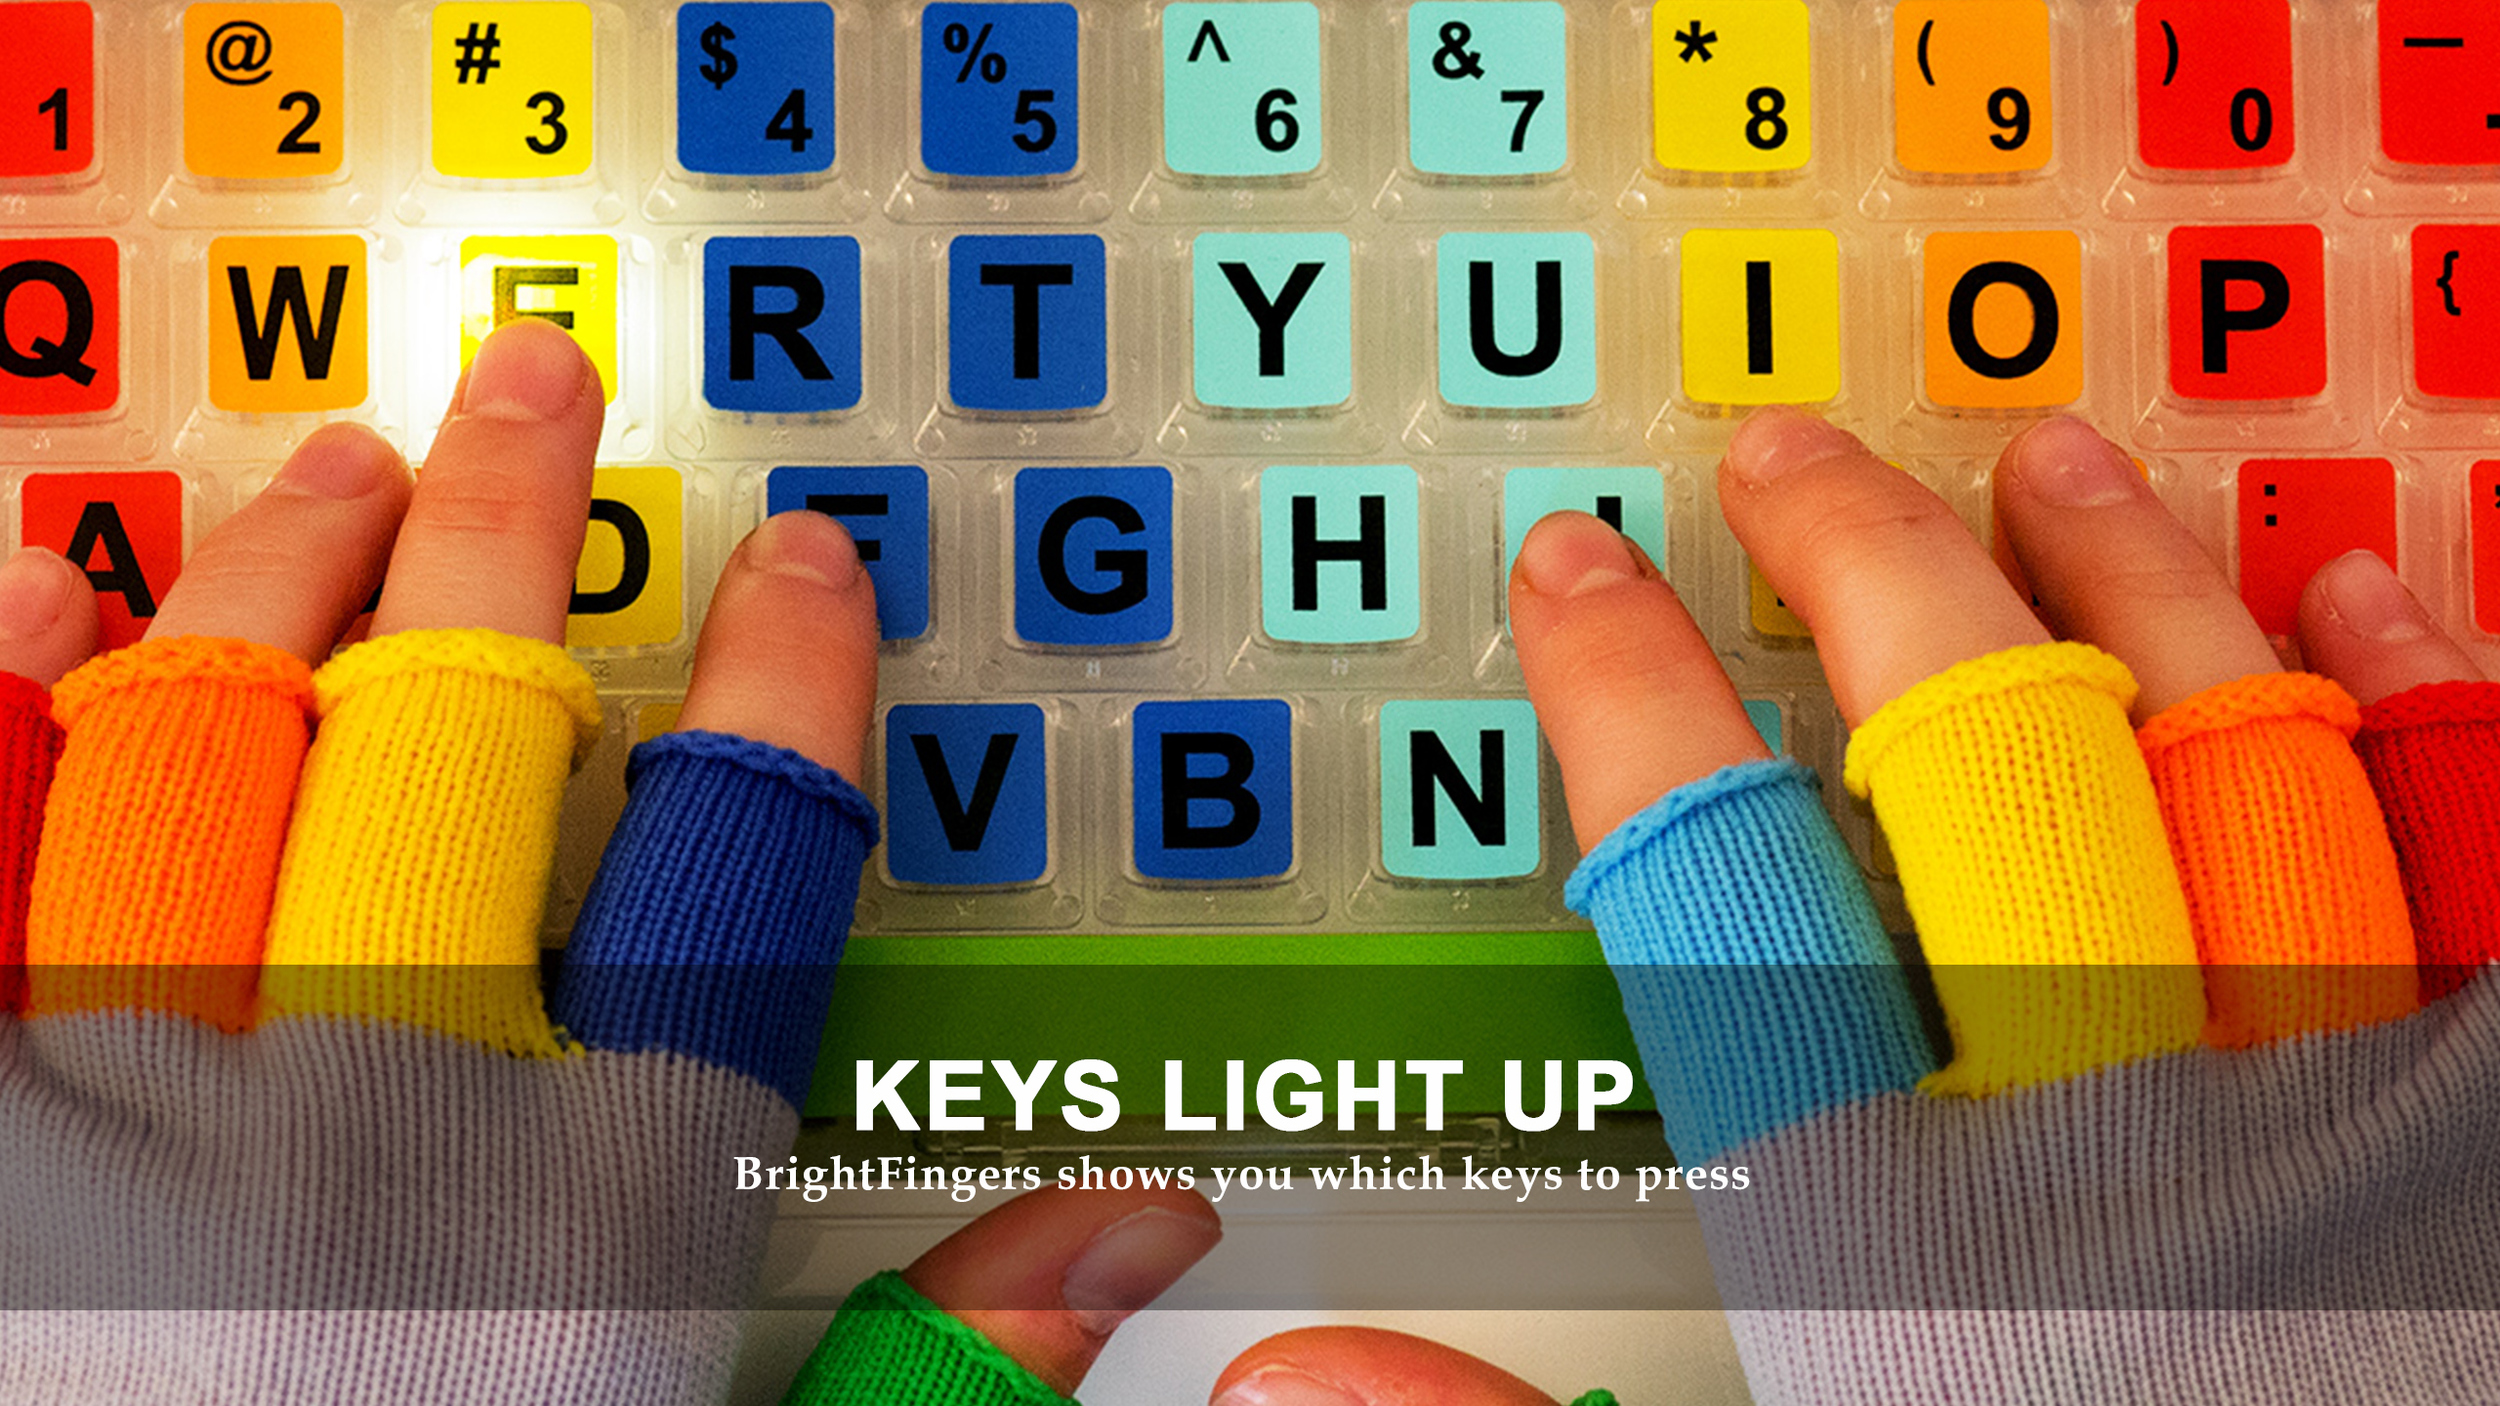 KEYS LIGHT UP